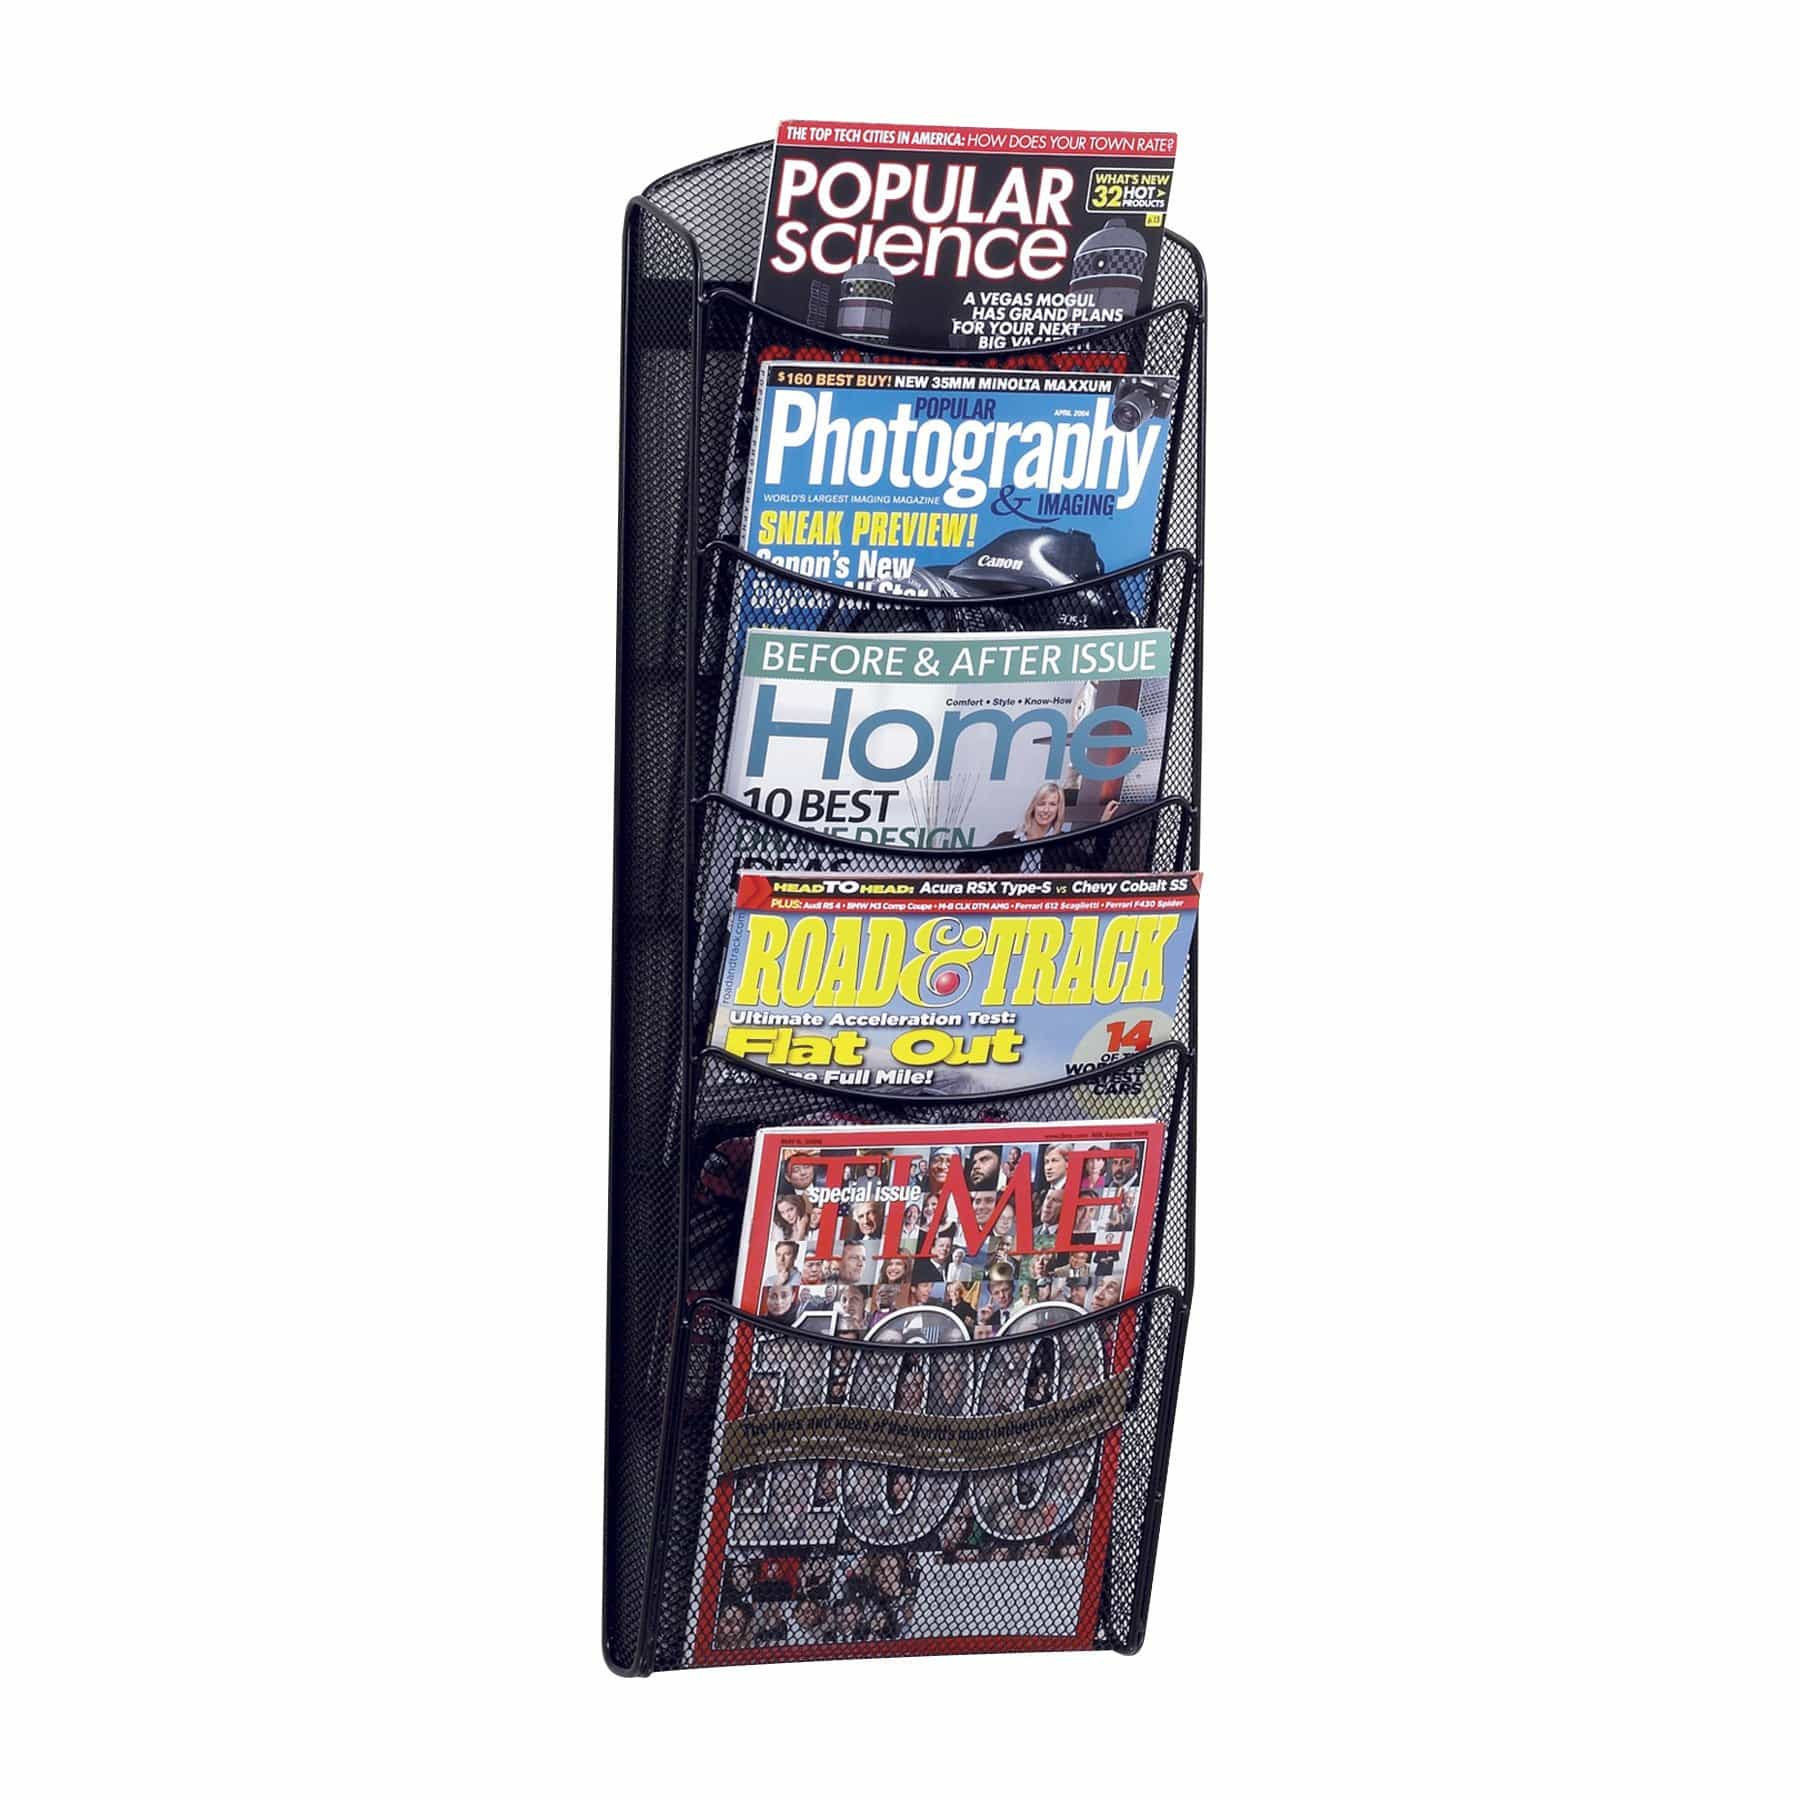 bedinhome - 5578BL 5-Pocket Onyx powder coat finish mesh magazine wall mounting display Rack - Safco - Steel Magazine Racks